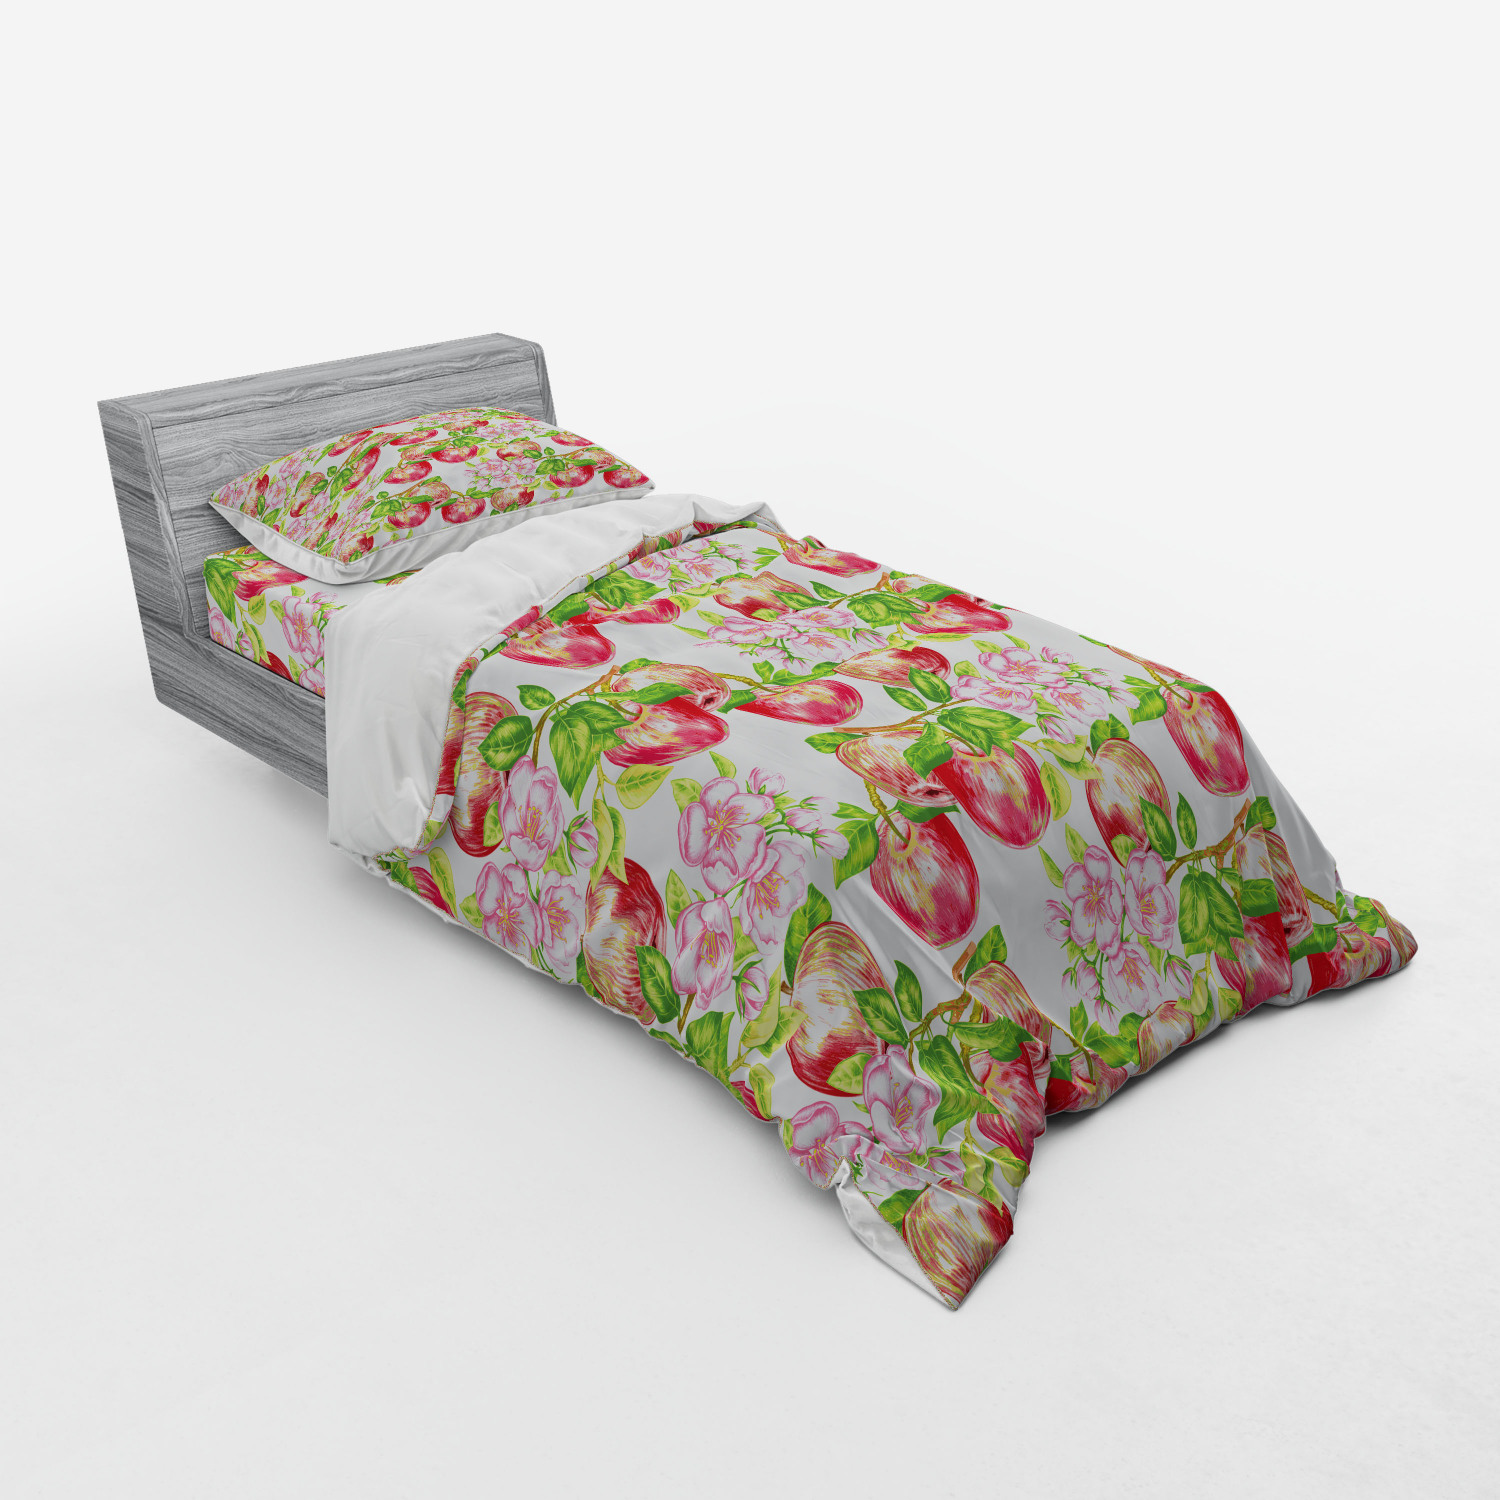 thumbnail 117 - Ambesonne Summer Bedding Set Duvet Cover Sham Fitted Sheet in 3 Sizes